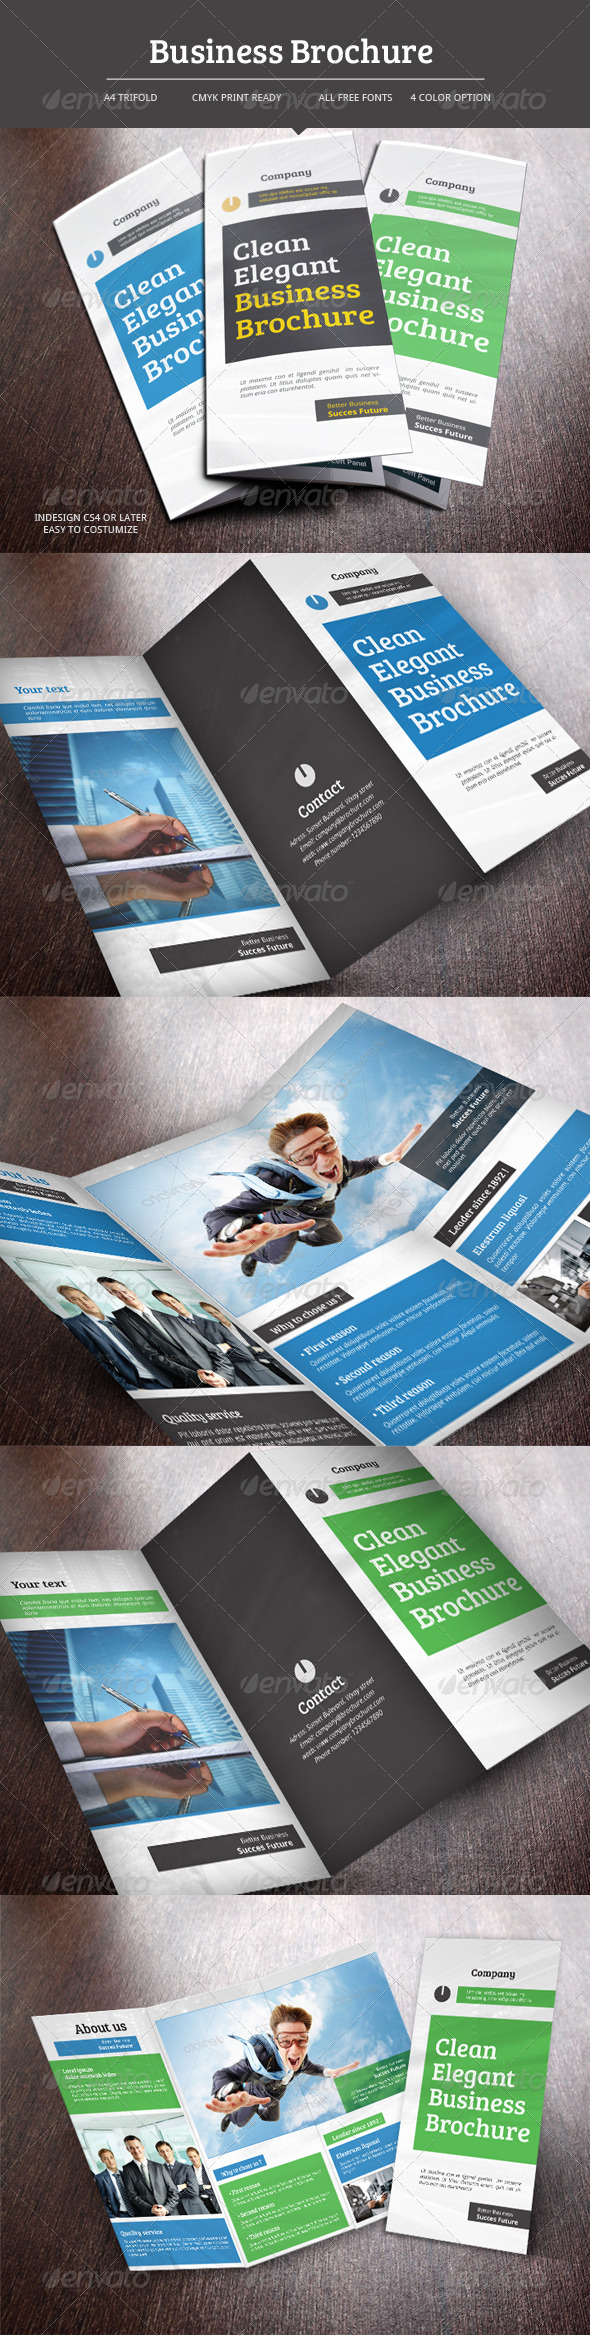 GraphicRiver Business Trifold Brochure 5766768